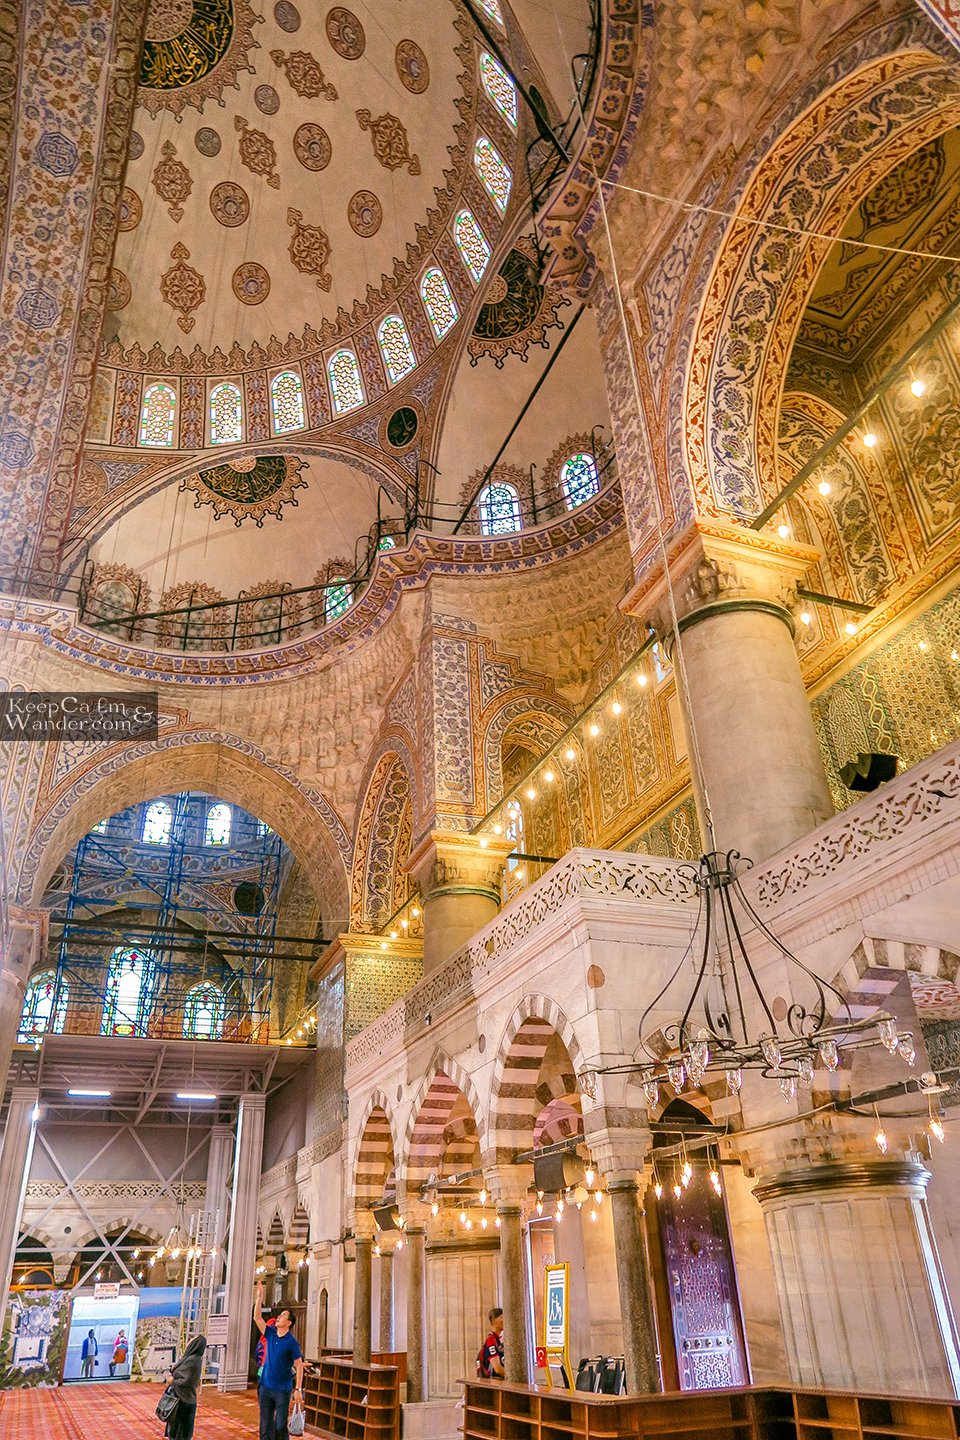 10 Things You Need to Know Before Visiting the Blue Mosque (Istanbul, Turkey).